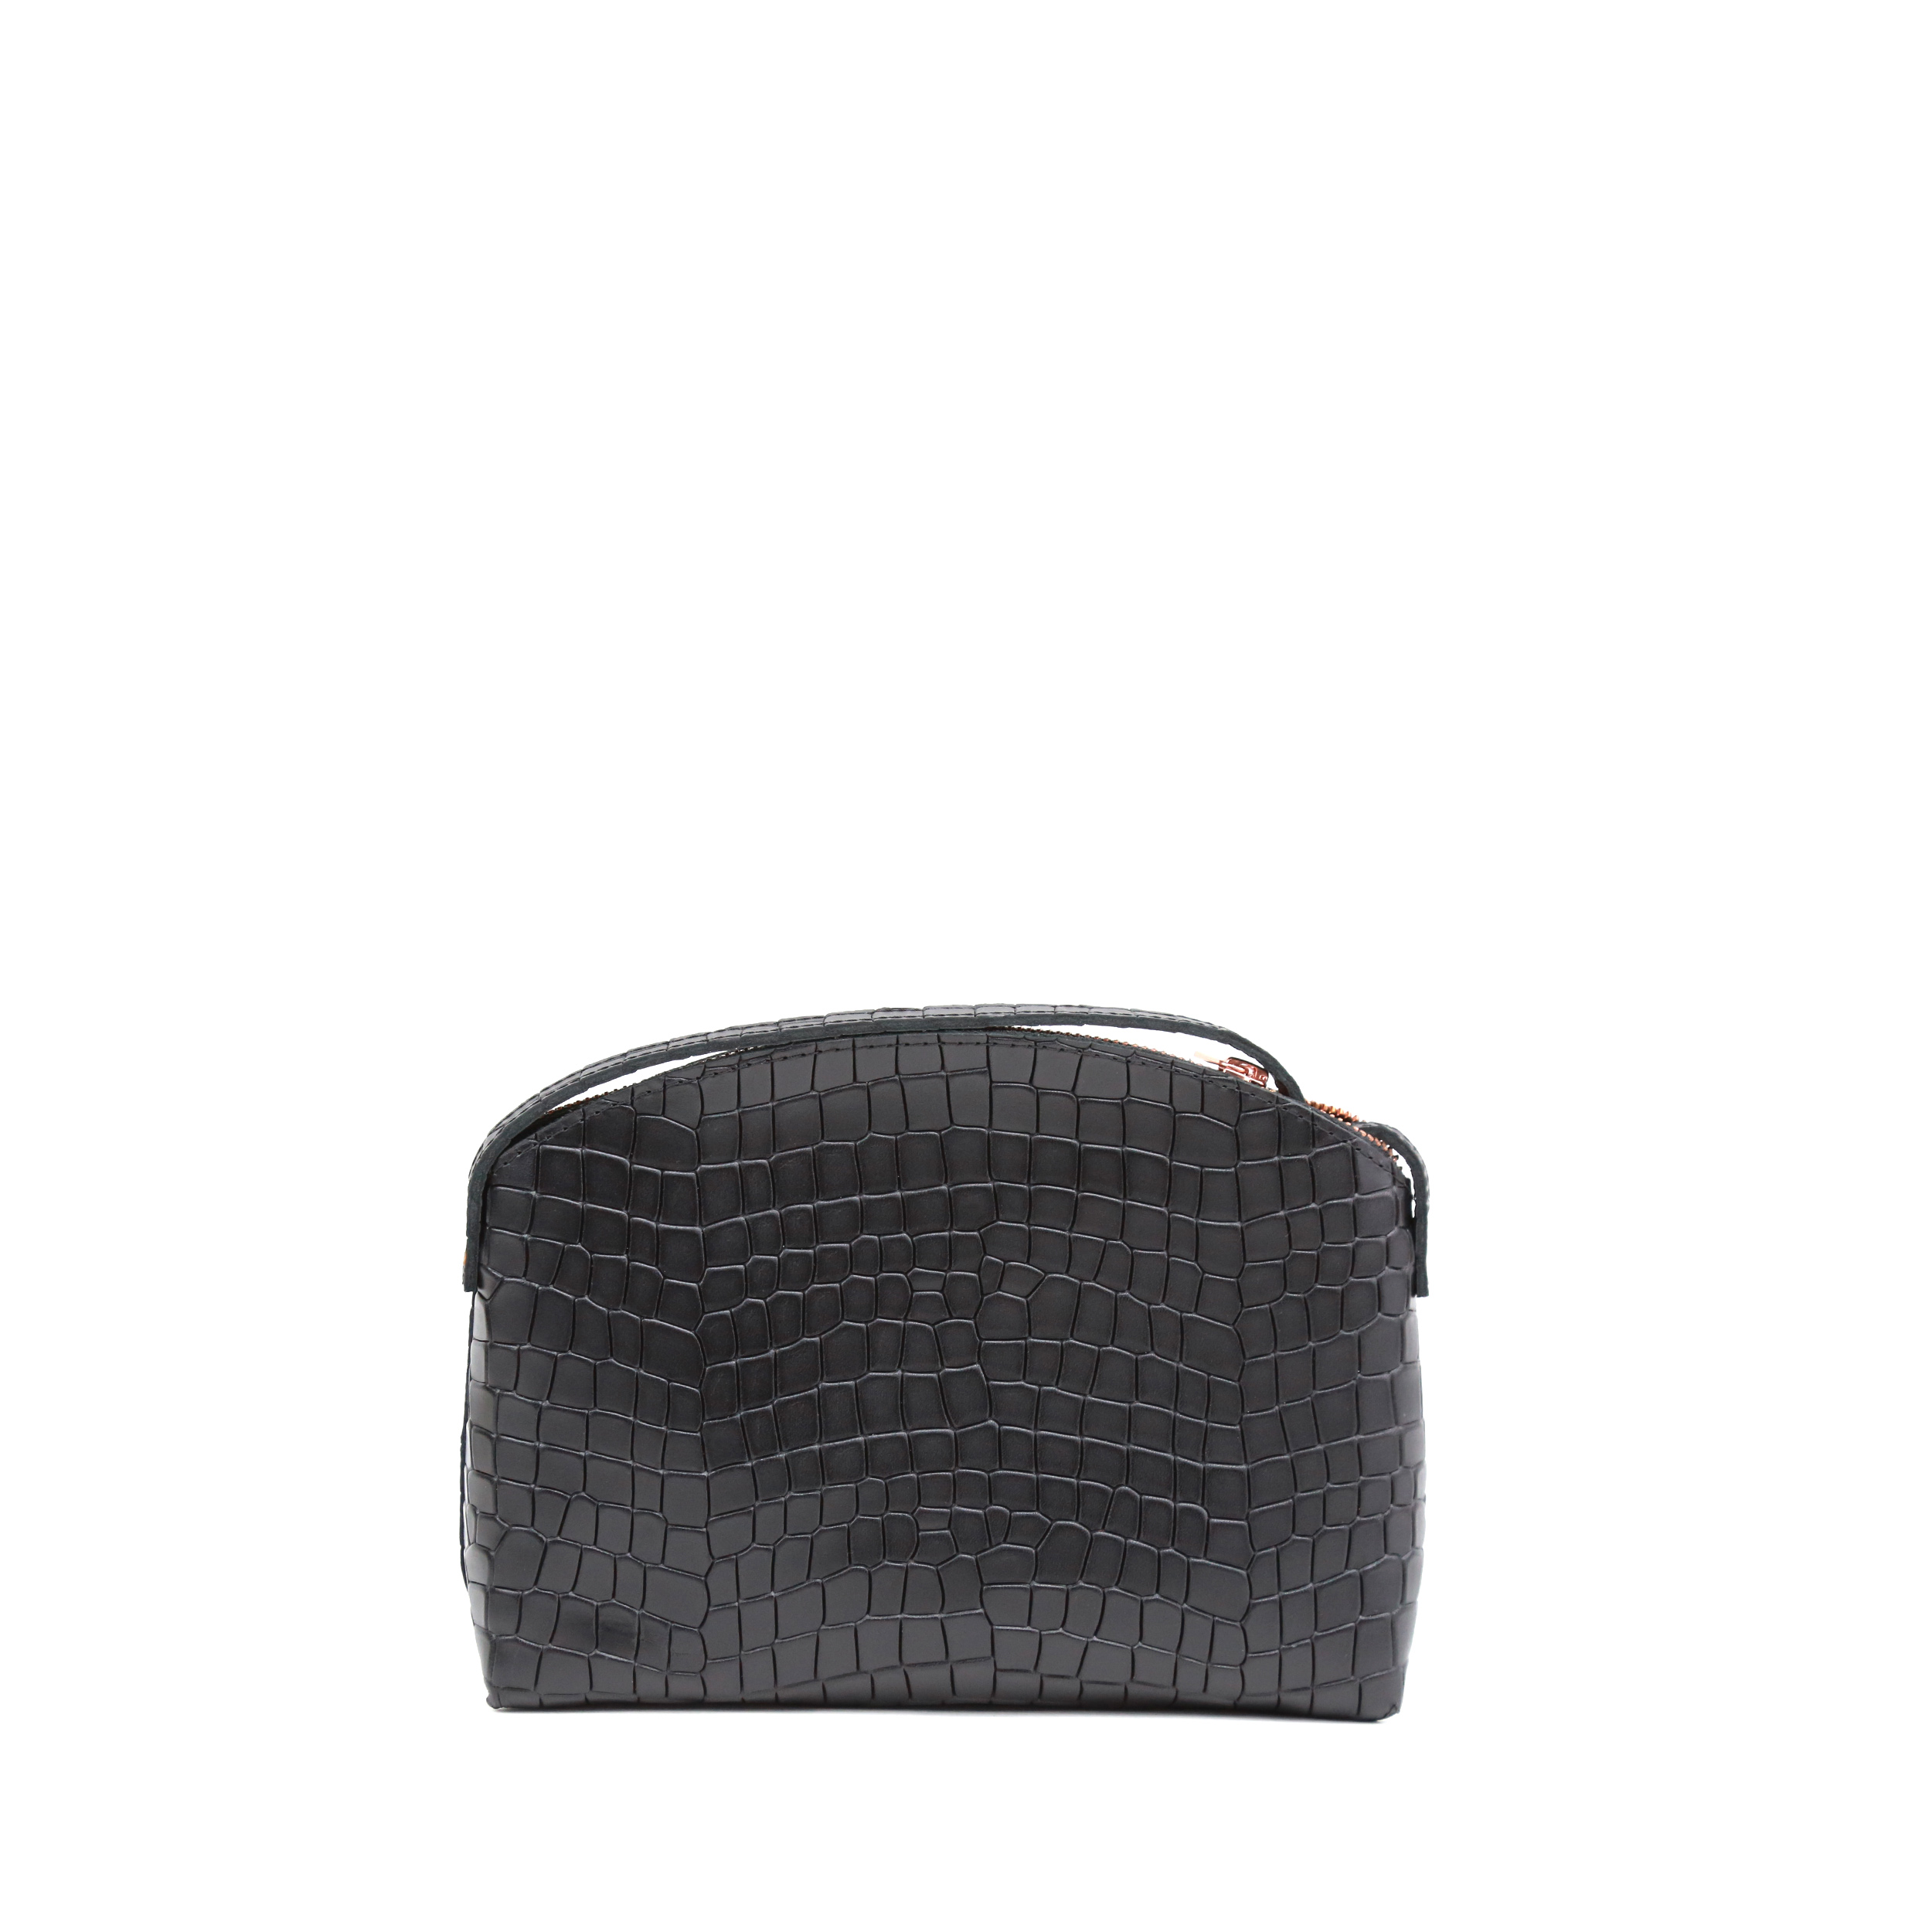 TIMI-Crossbody-Bag-Croco-Black-3